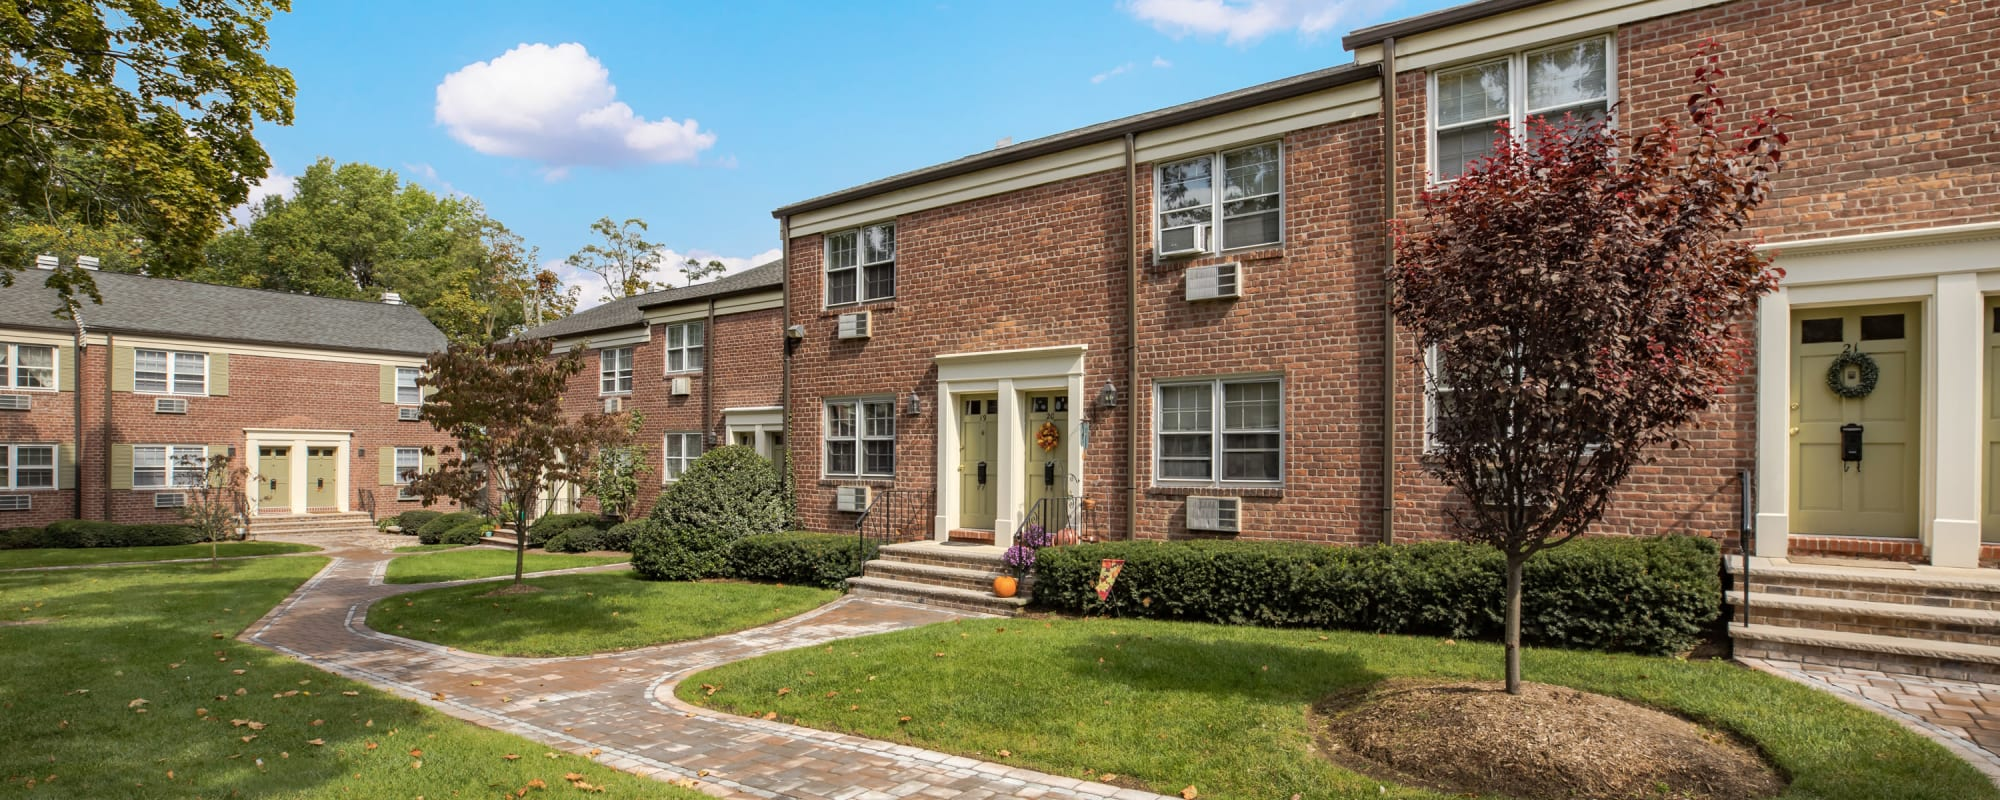 Schedule a tour to see General Wayne Townhomes and Ridgedale Gardens in Madison, New Jersey